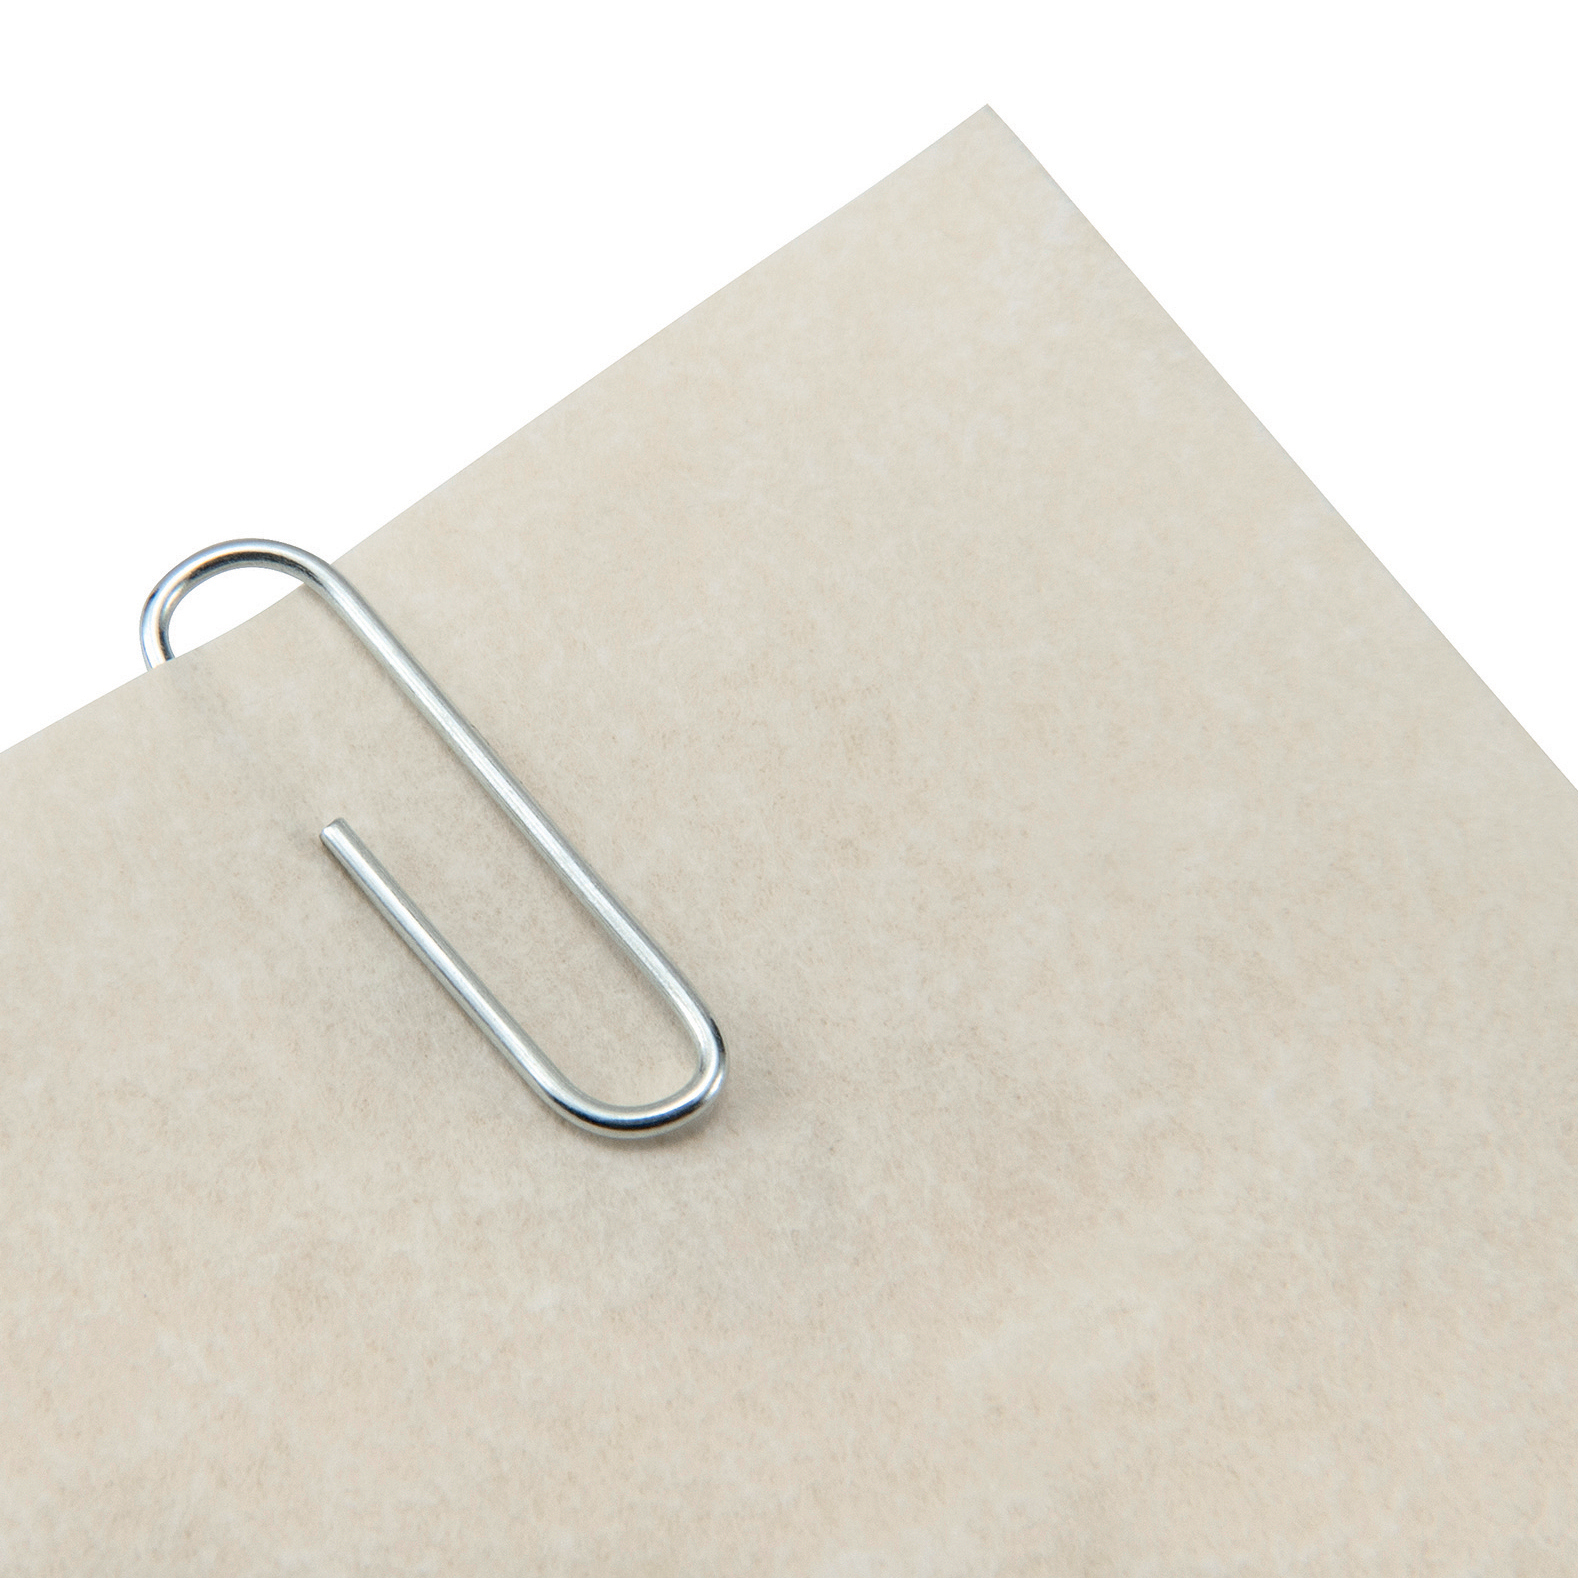 5 Star Office Paperclips Small Plain Clips 22mm Pack 10x100